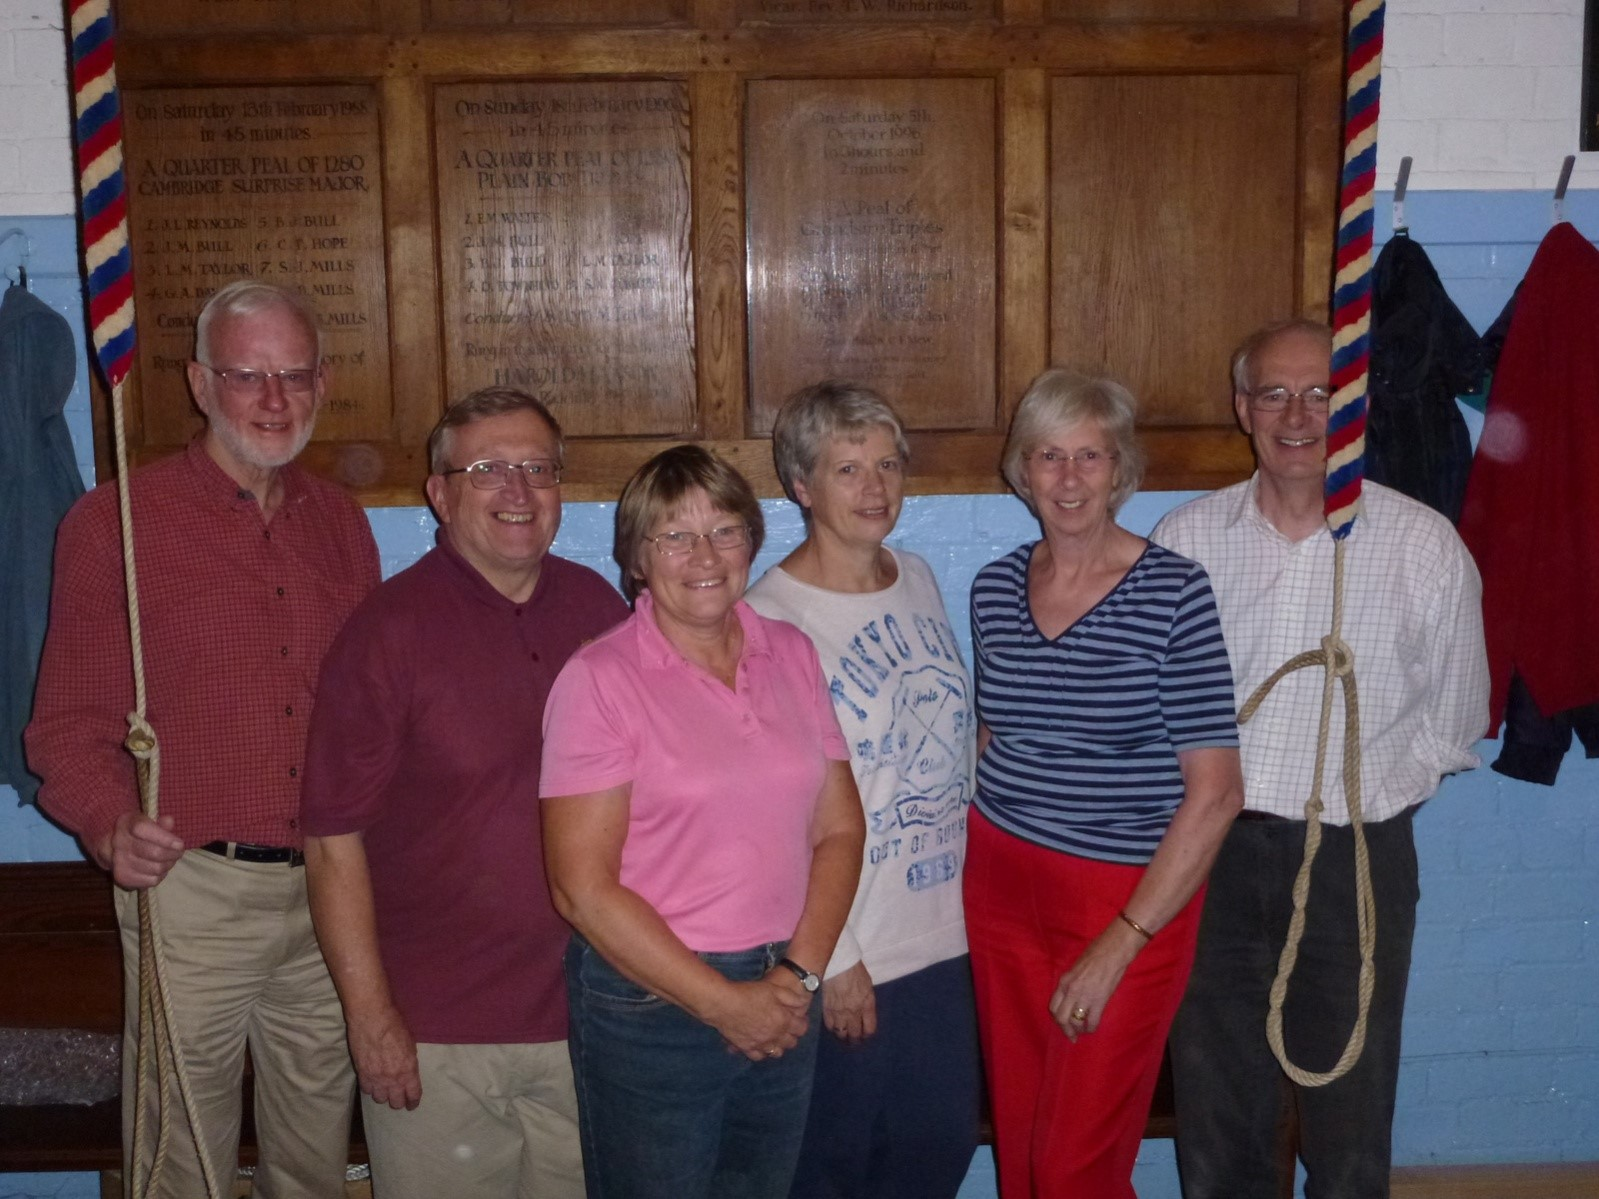 Some of the current ringers